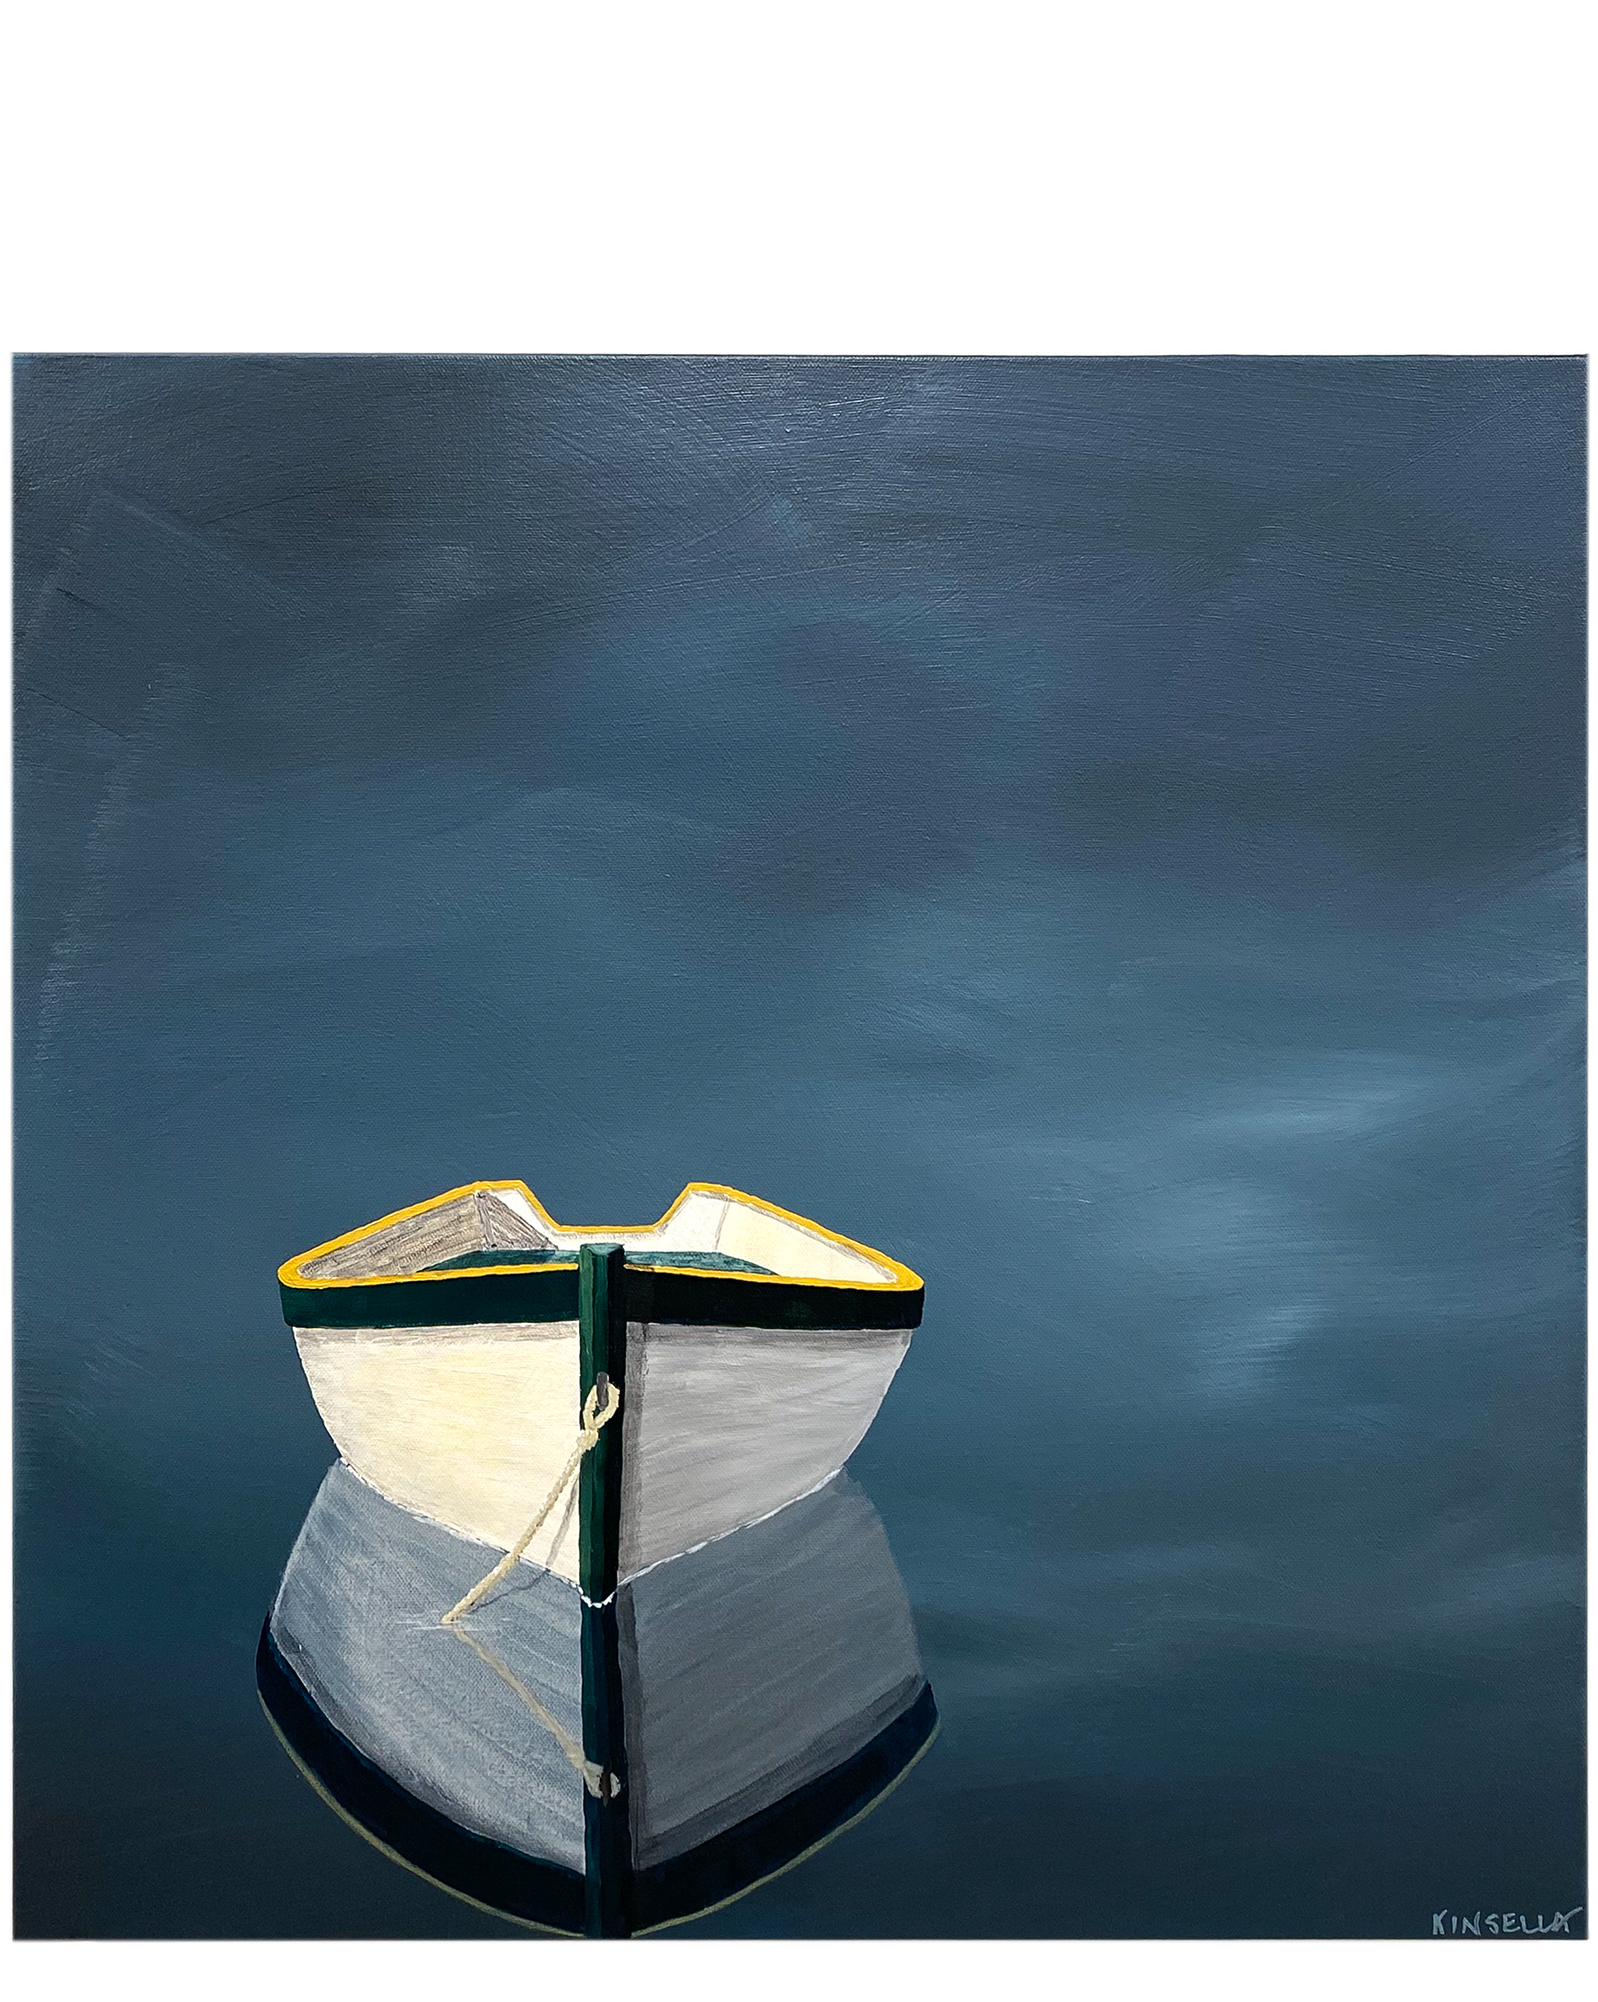 """In the Quiet Light"" by Susan Kinsella,"